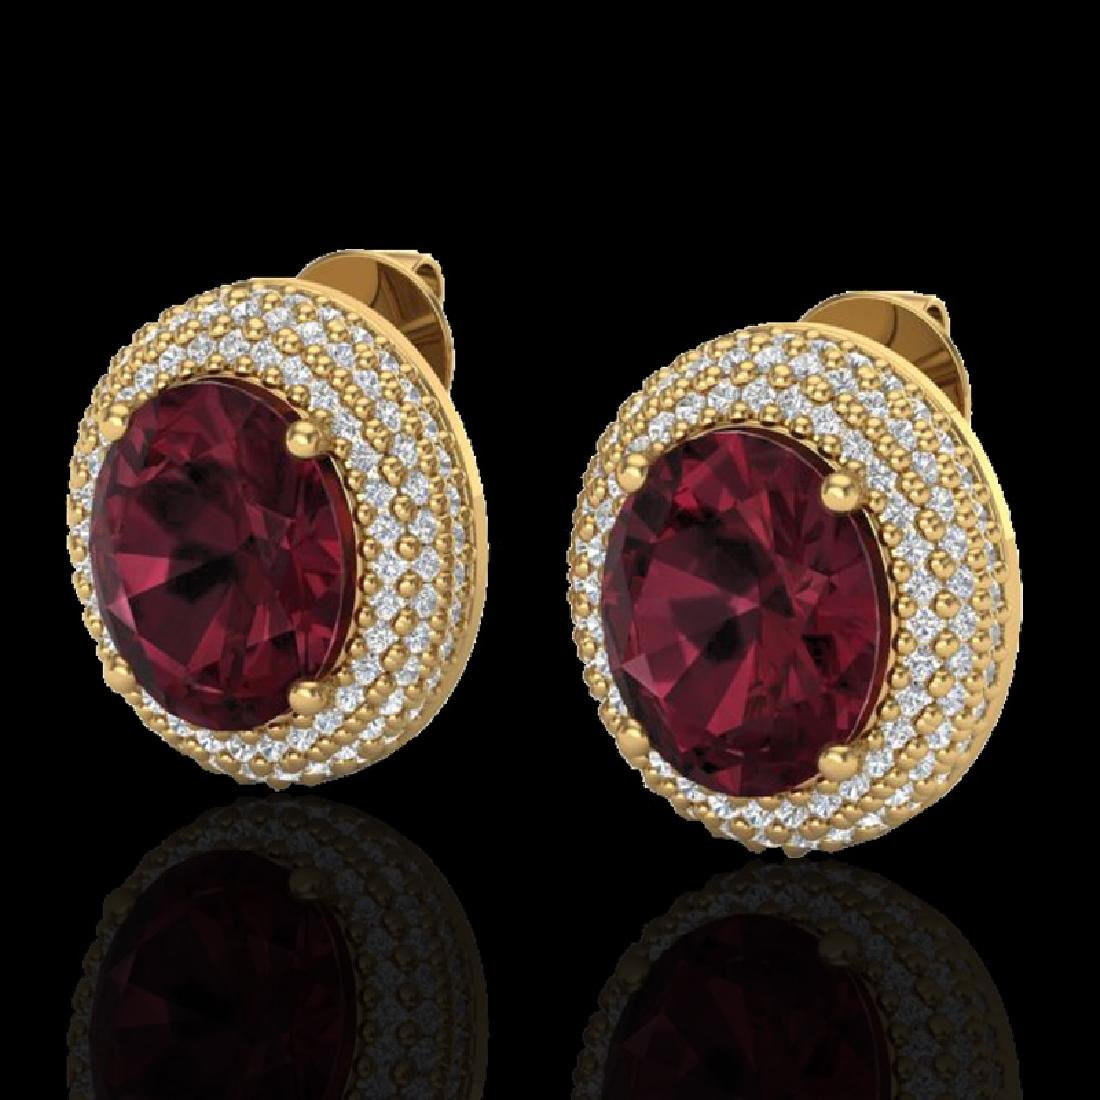 9 CTW Garnet & Micro Pave VS/SI Diamond Earrings 18K